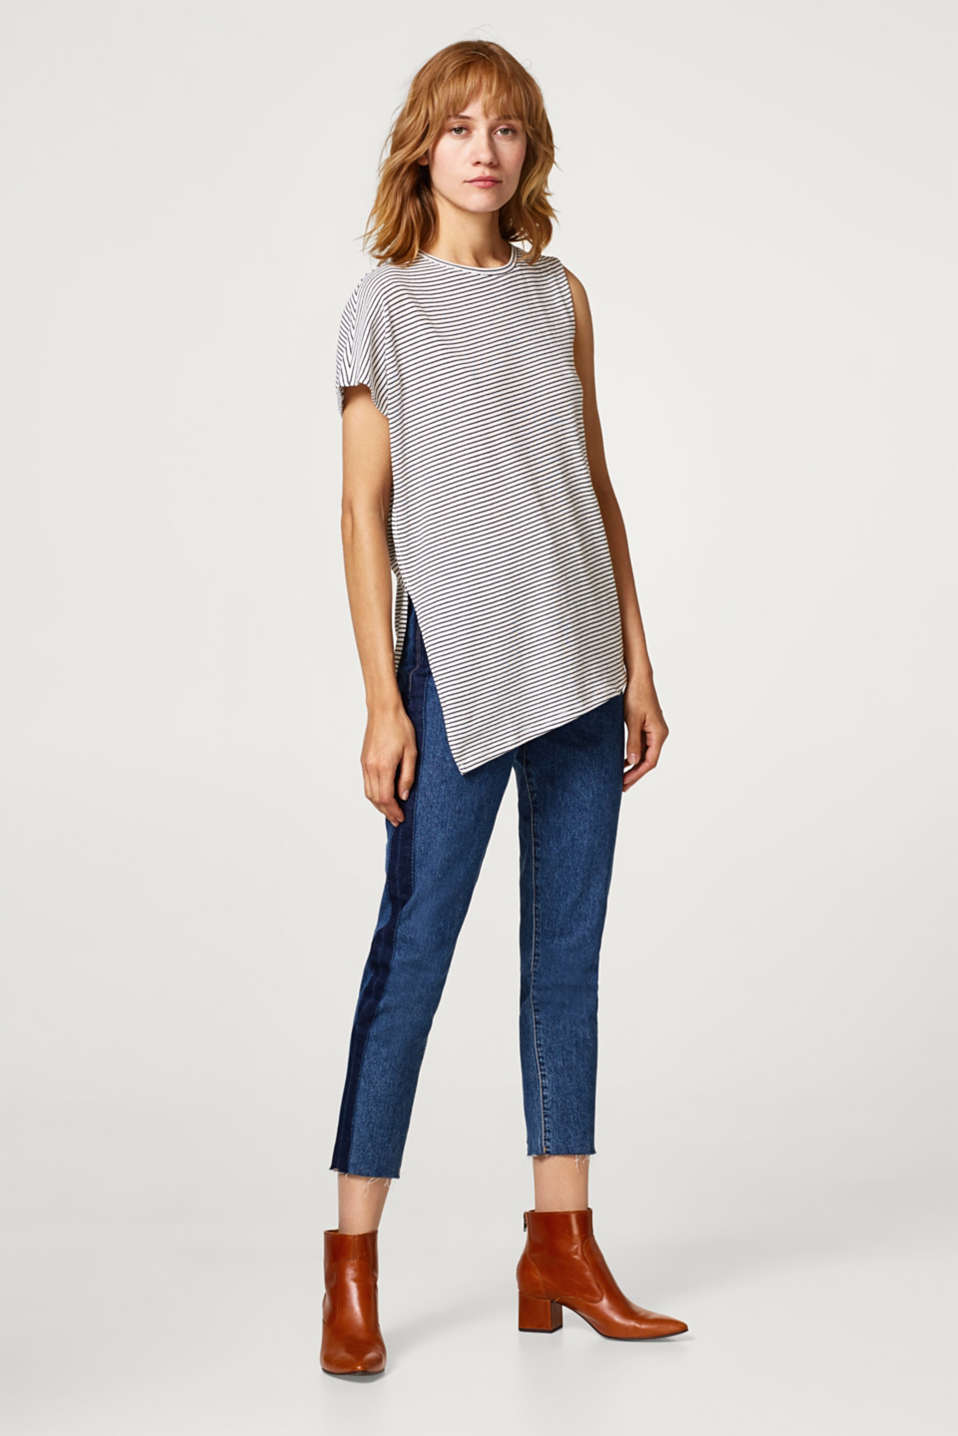 One-shoulder top, 100% cotton